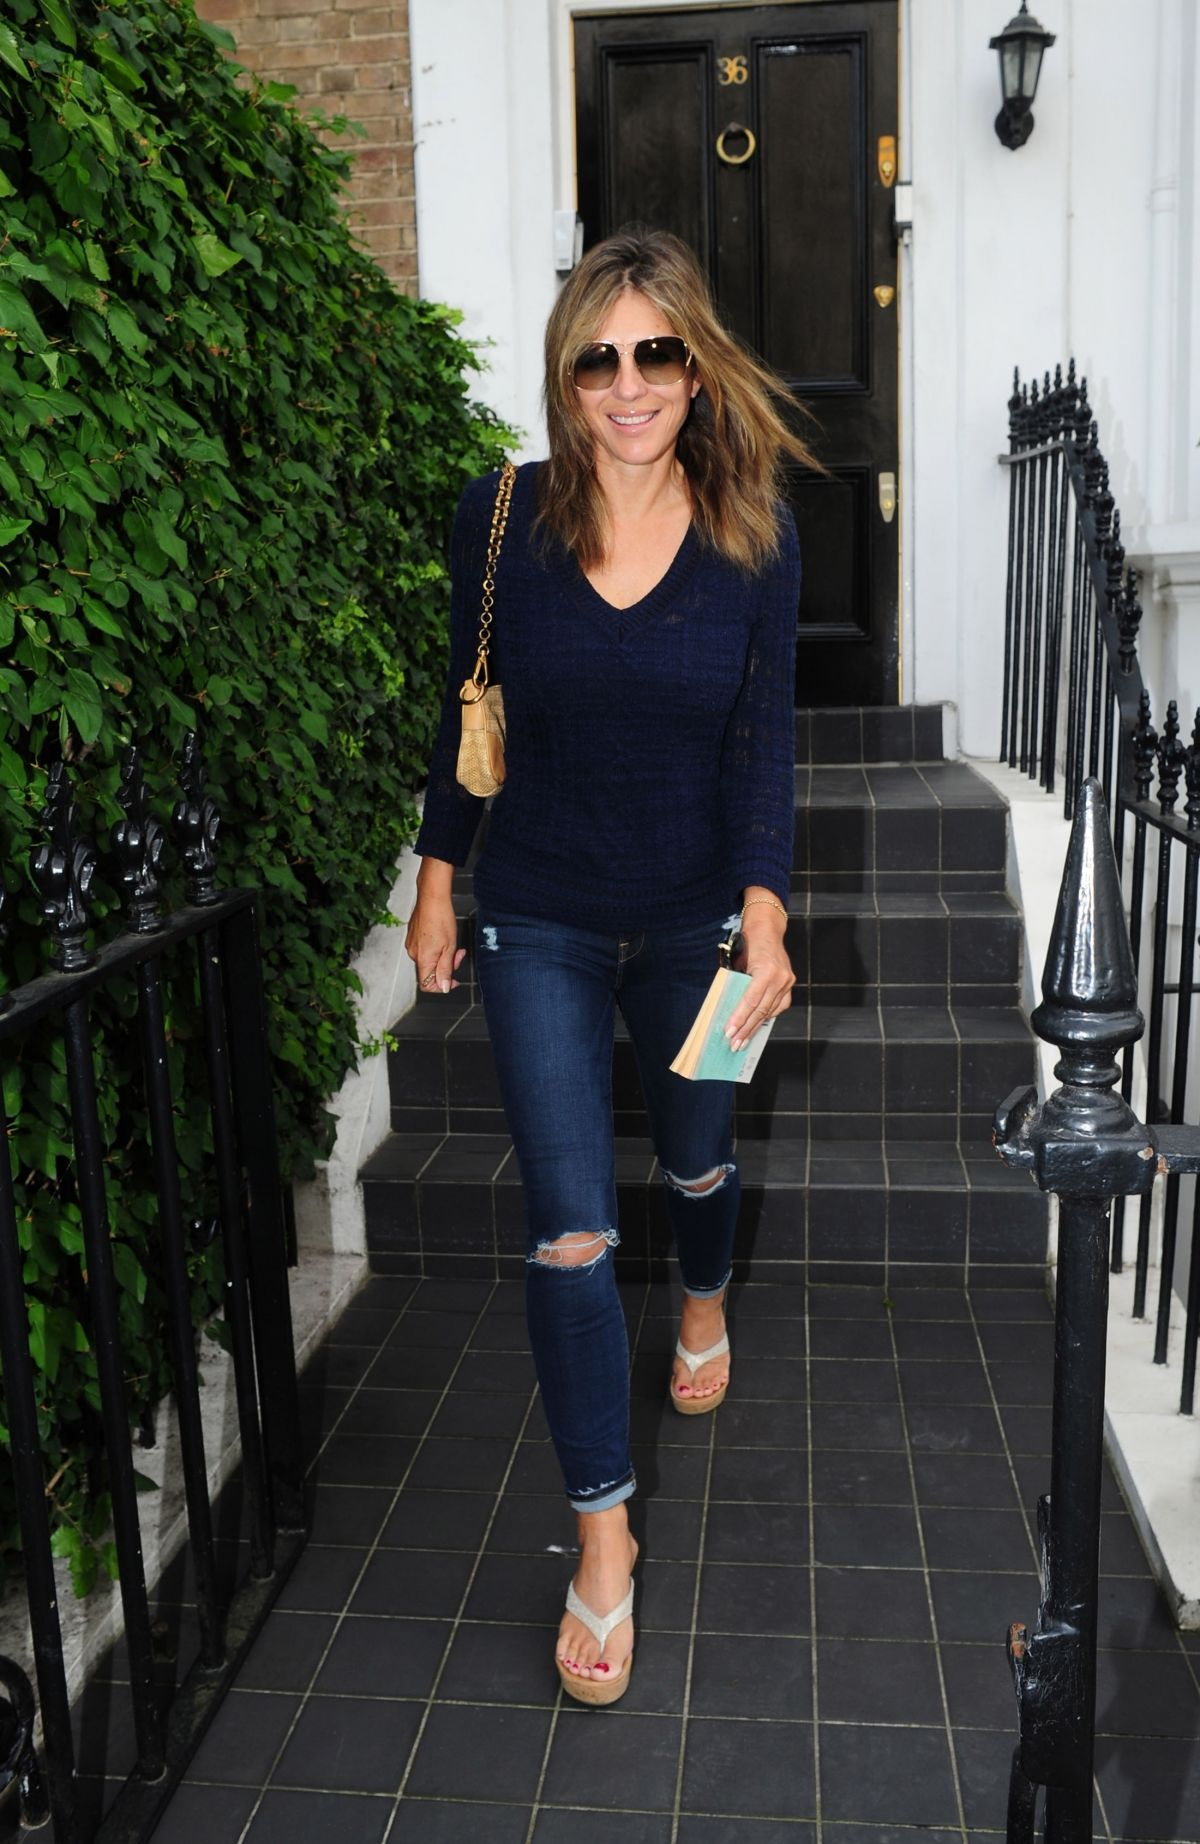 Elizabeth Hurley Leaves Her House in London 08/25/2017